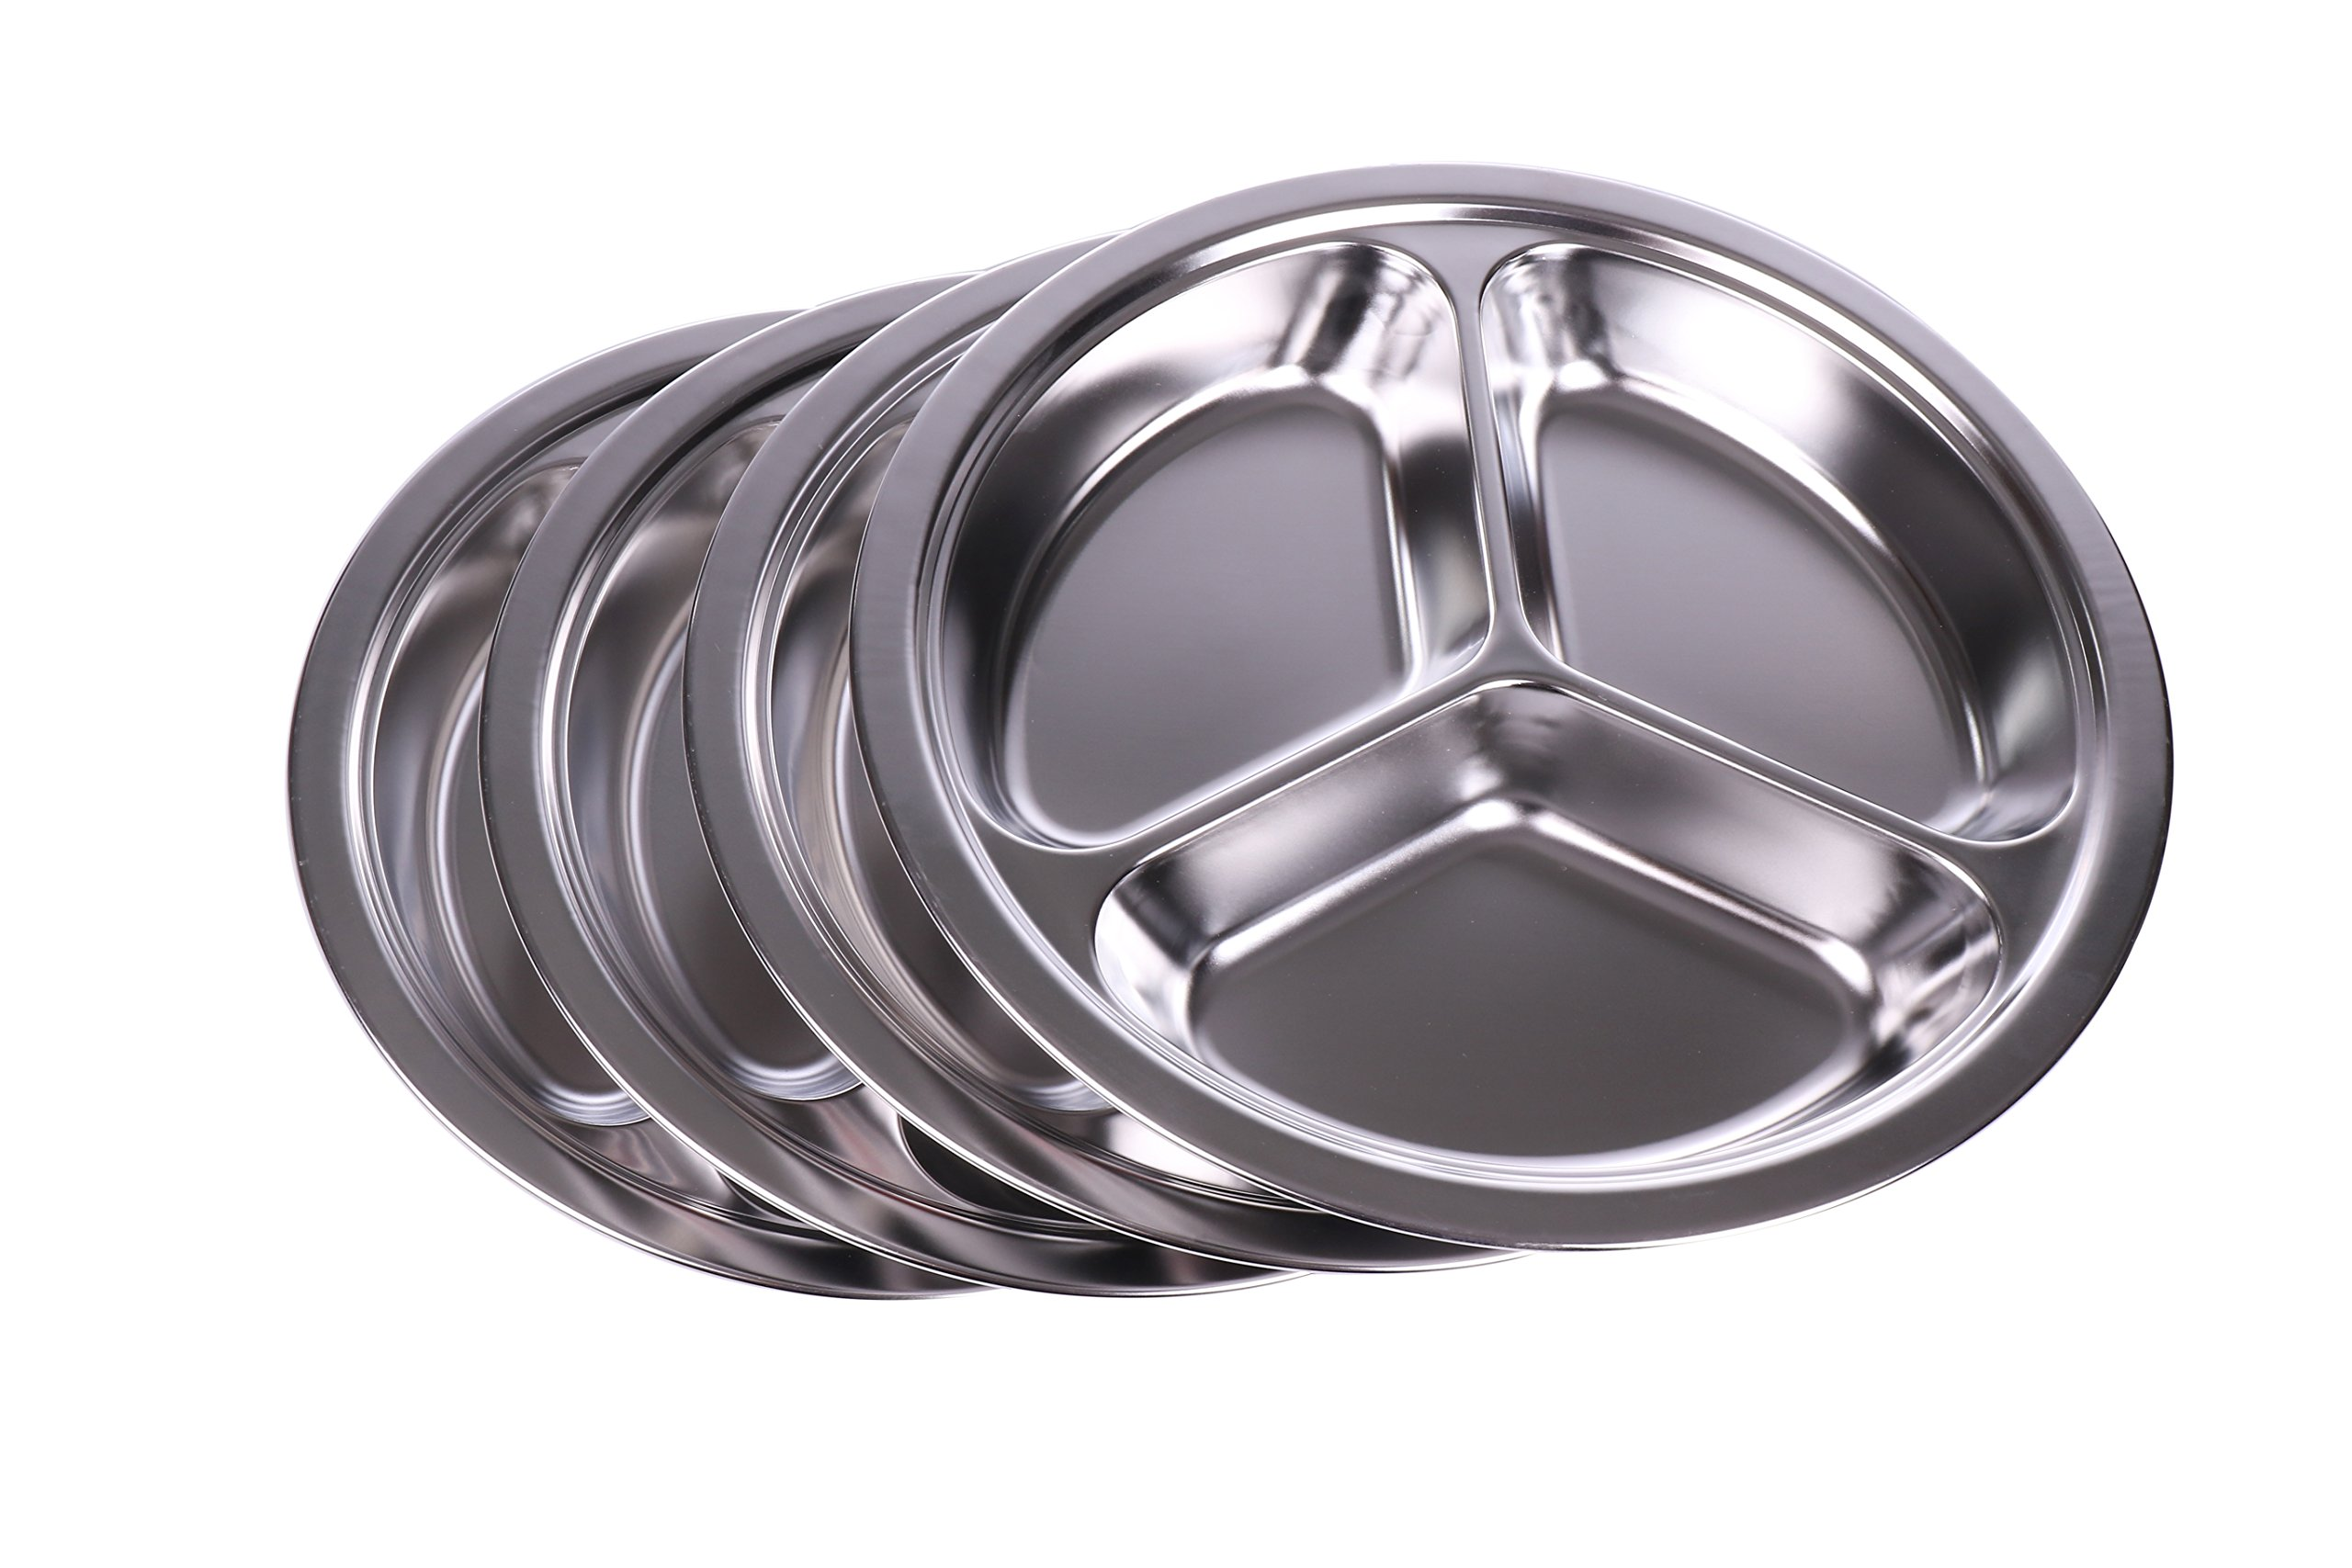 Stainless Steel Sectioned Dinner Plates (Set of 4) - 304 SS, 1 inch deep, 10 inches With 3 Compartments - Great for Kids, Picky Eaters, Campers, and for Portion Control